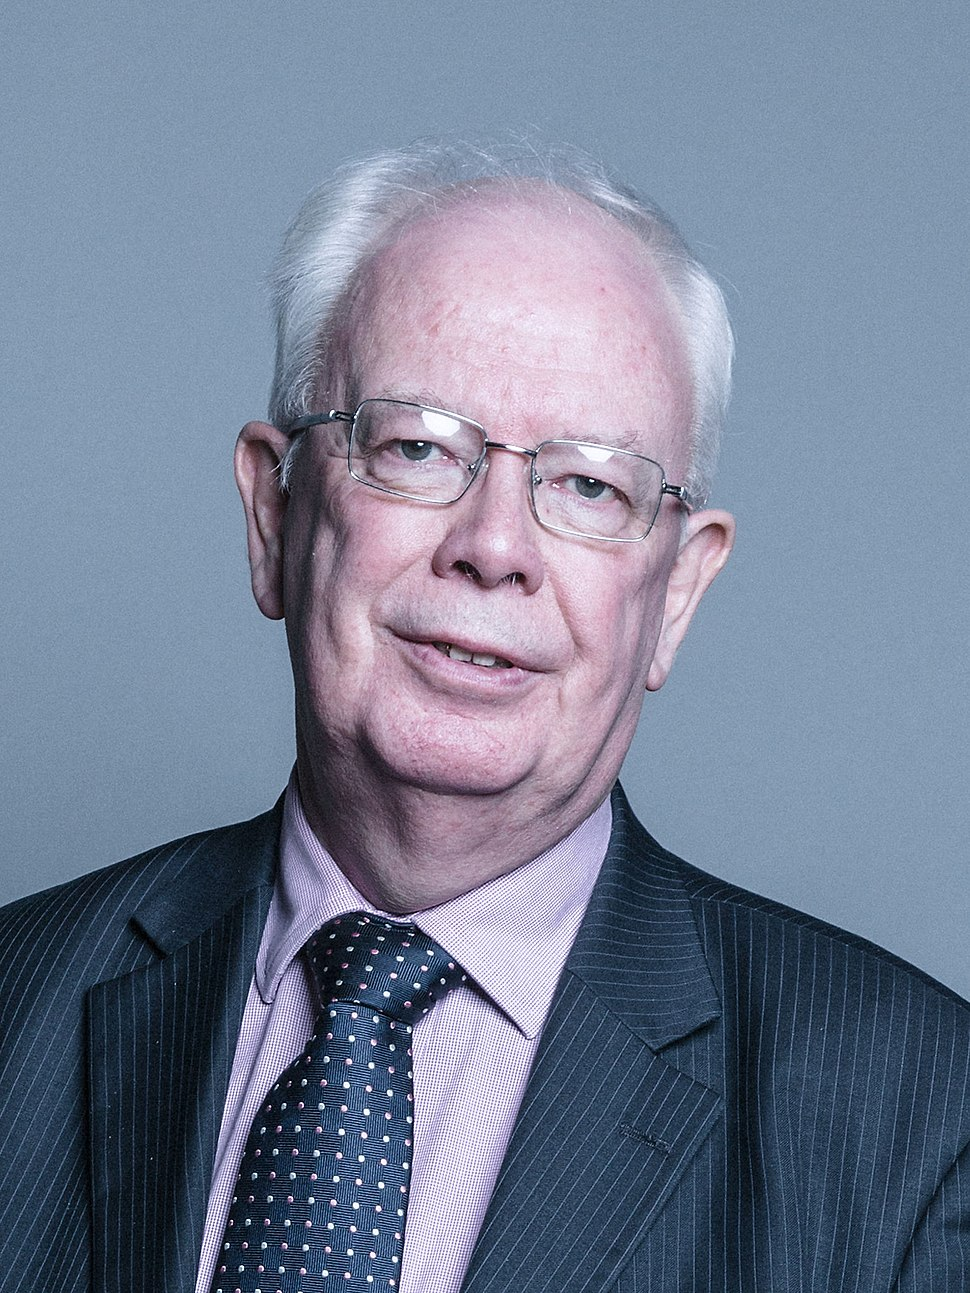 Official portrait of Lord Wallace of Tankerness crop 2